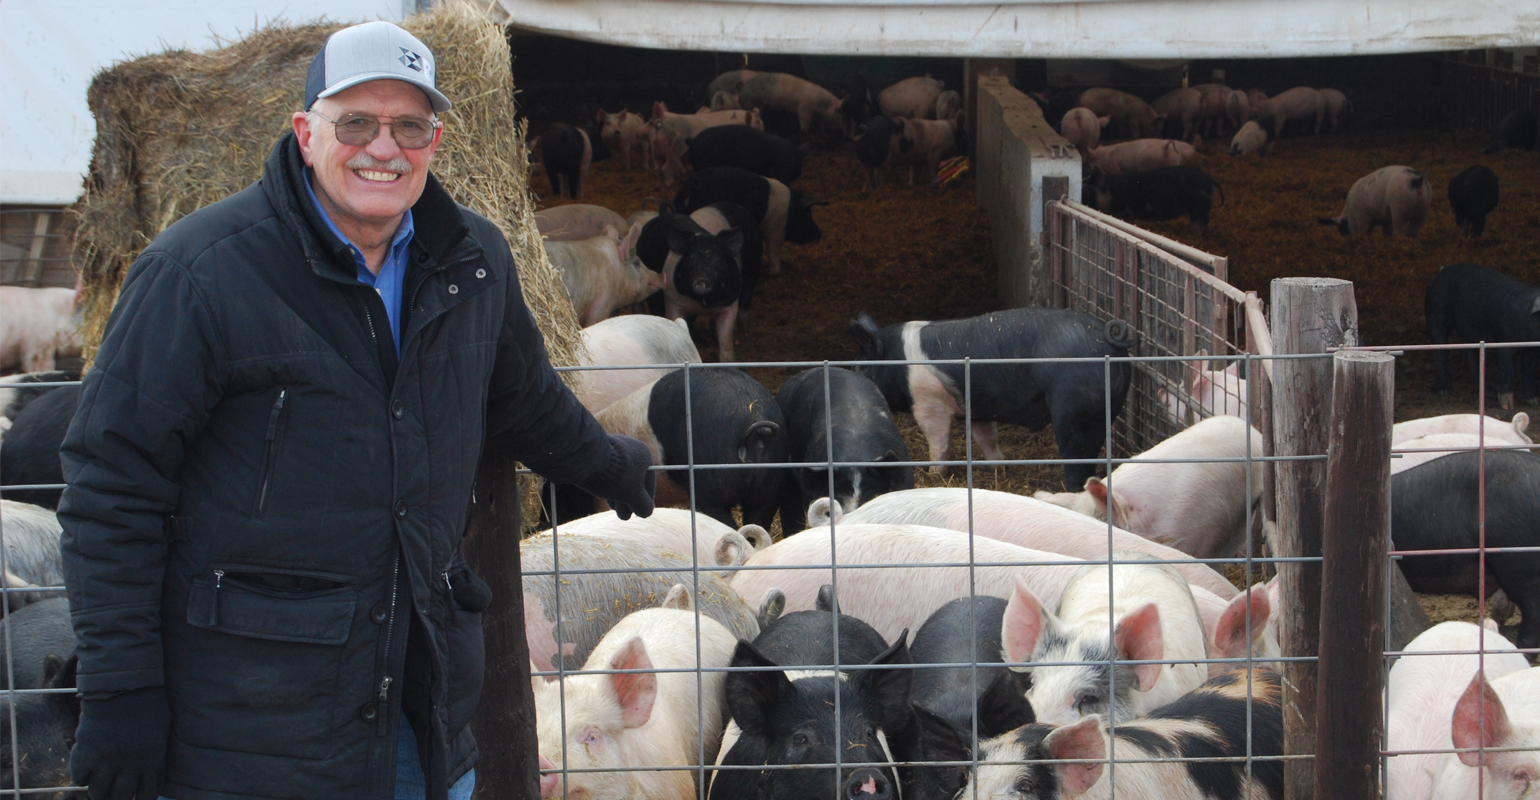 Ron Rosmann with dairy cows